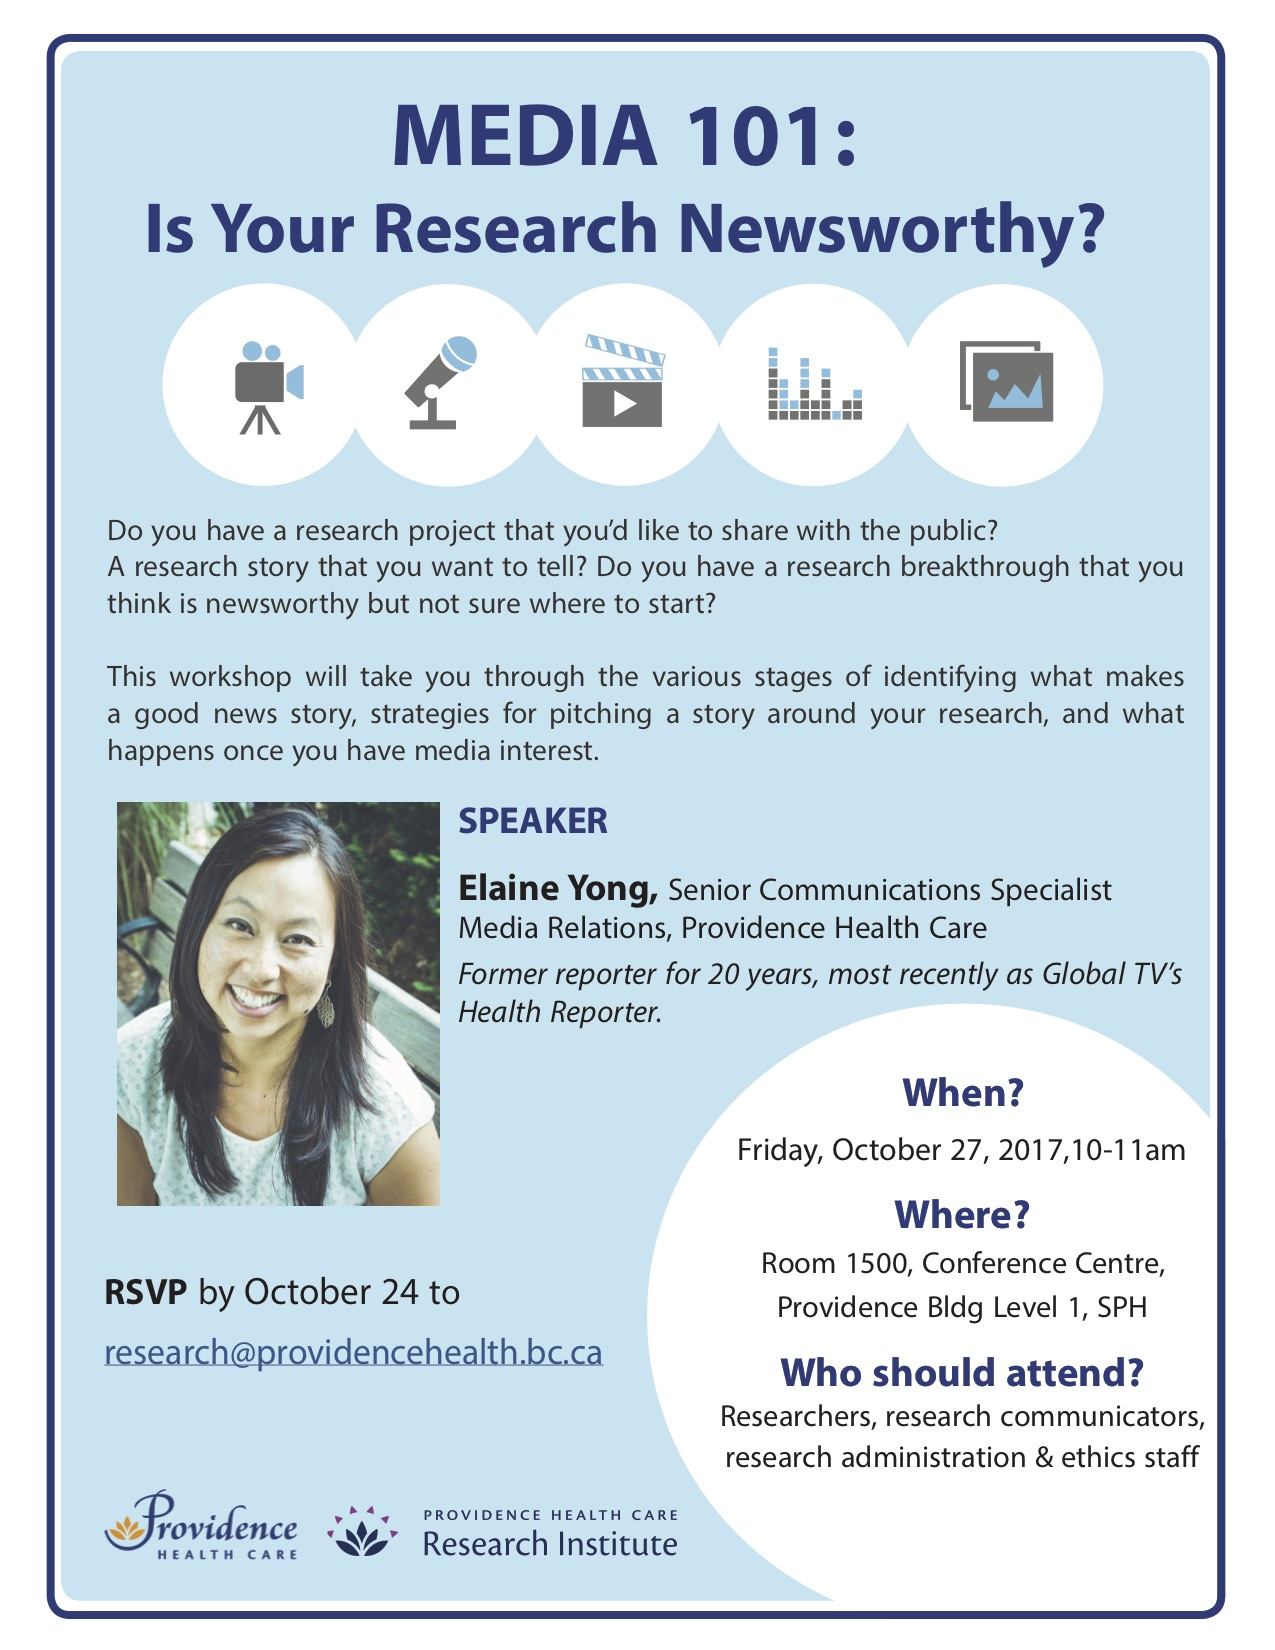 Media 101: Is your research newsworthy? @ Room 1500, Conference Centre, Providence Building Level 1, St. Paul's Hospital